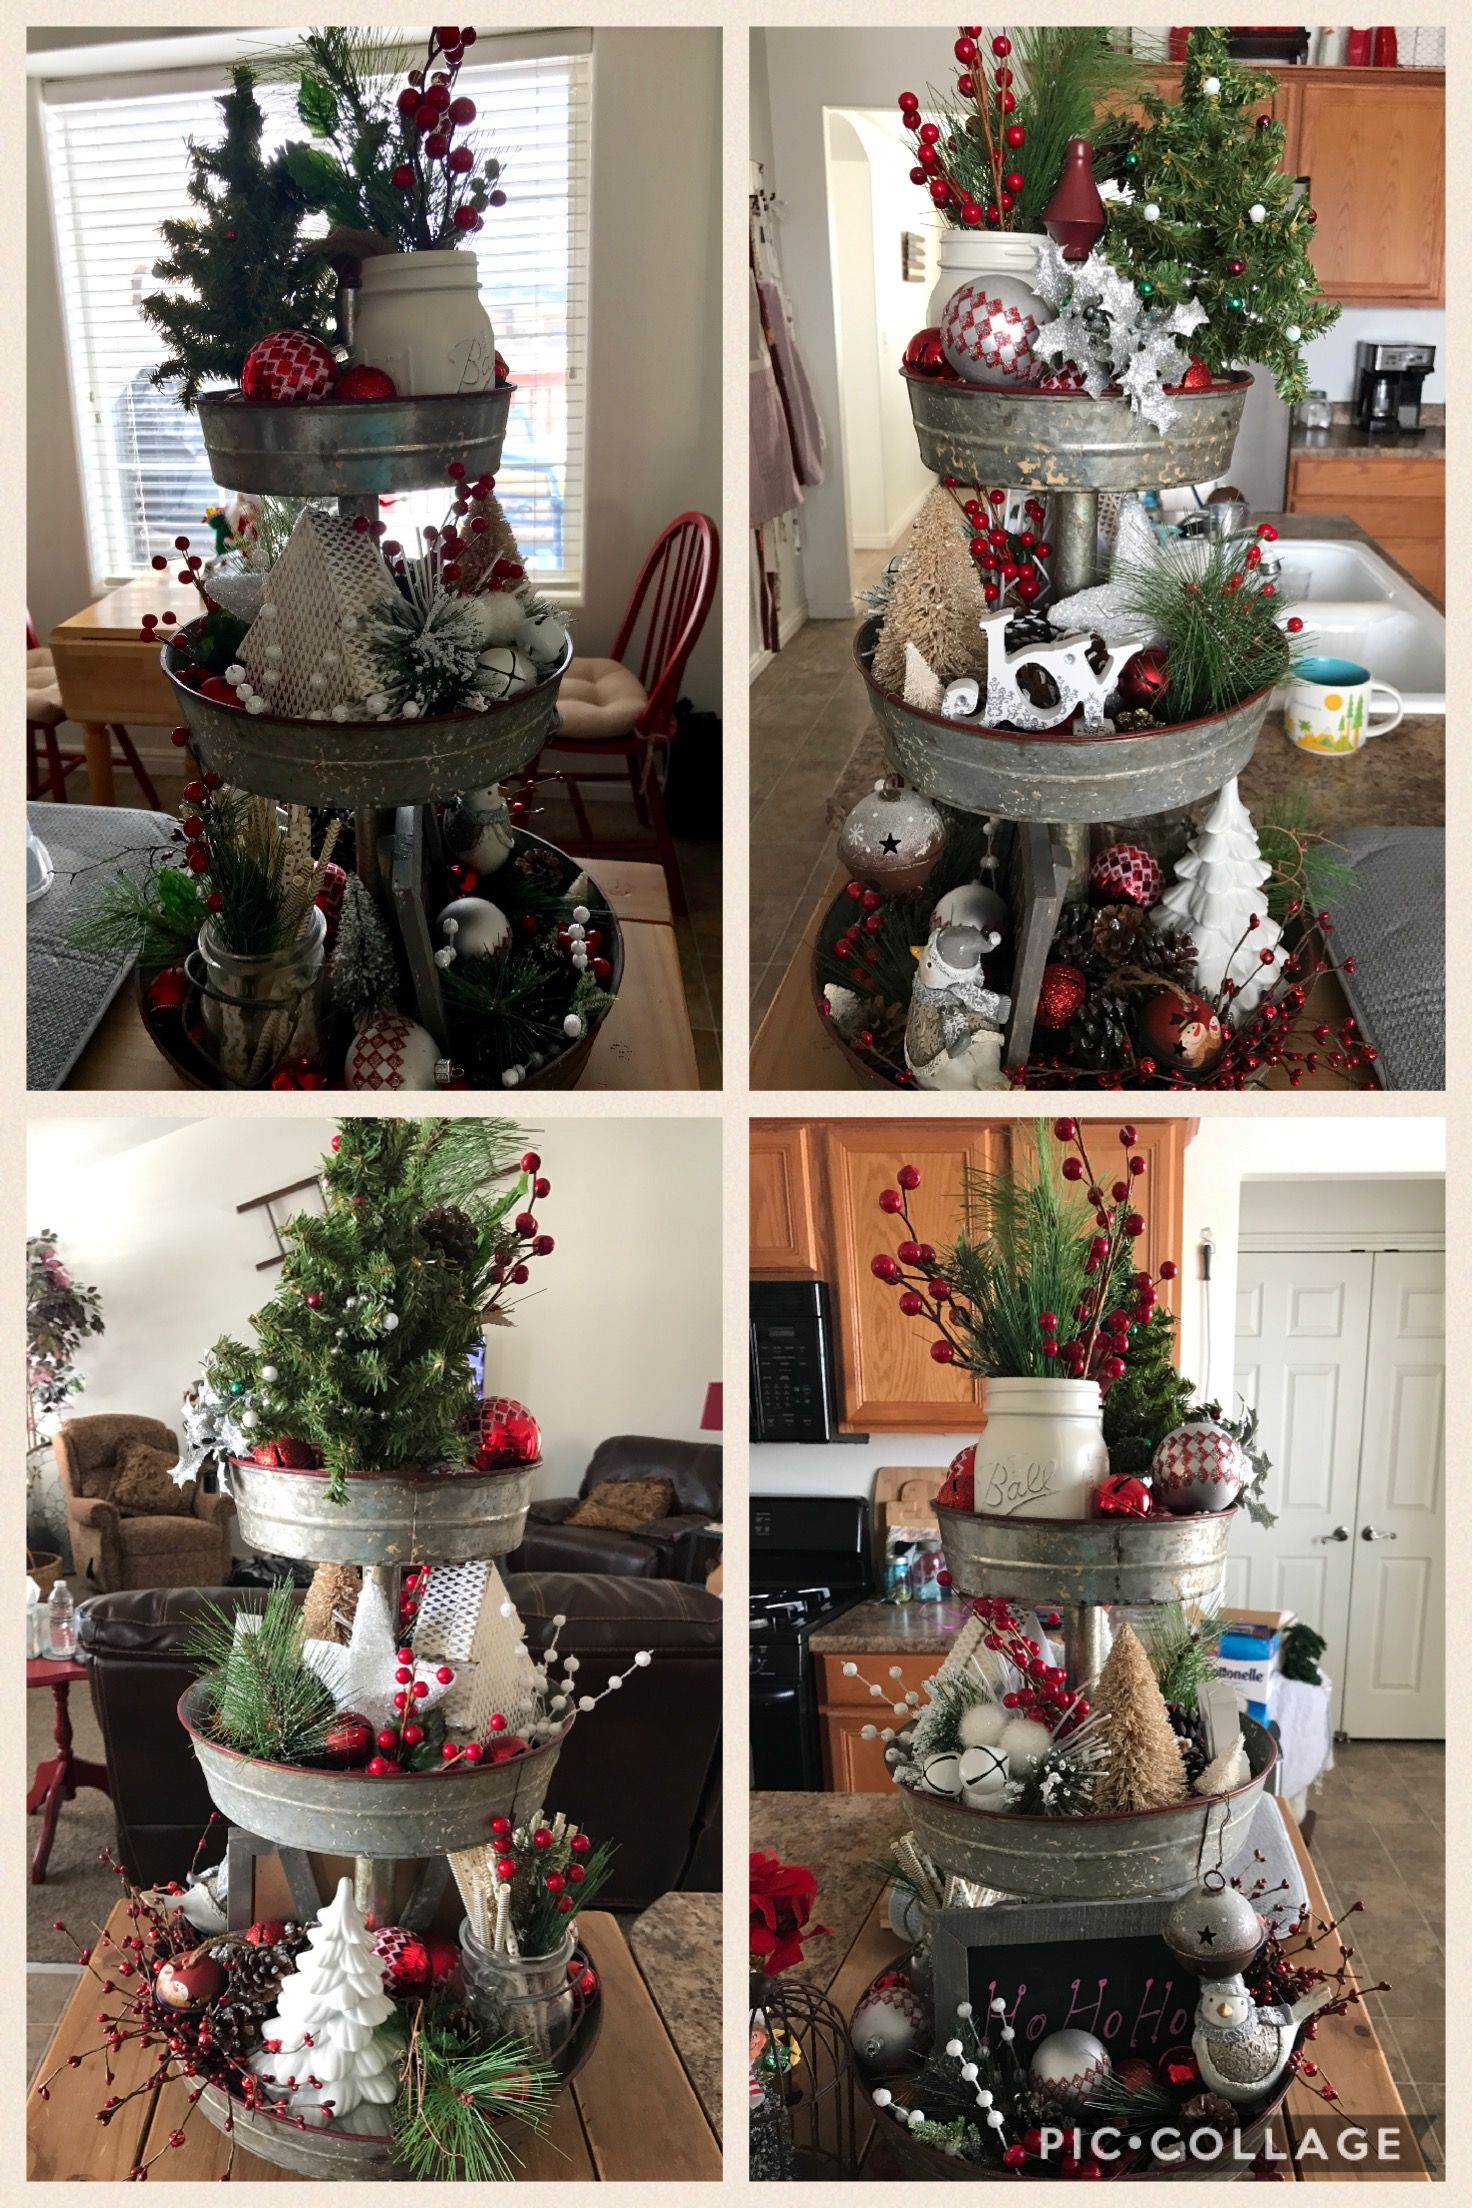 Pin By Laura Ripley On Christmas Kitchen Christmas Decorations Tray Decor Christmas Christmas Centerpieces